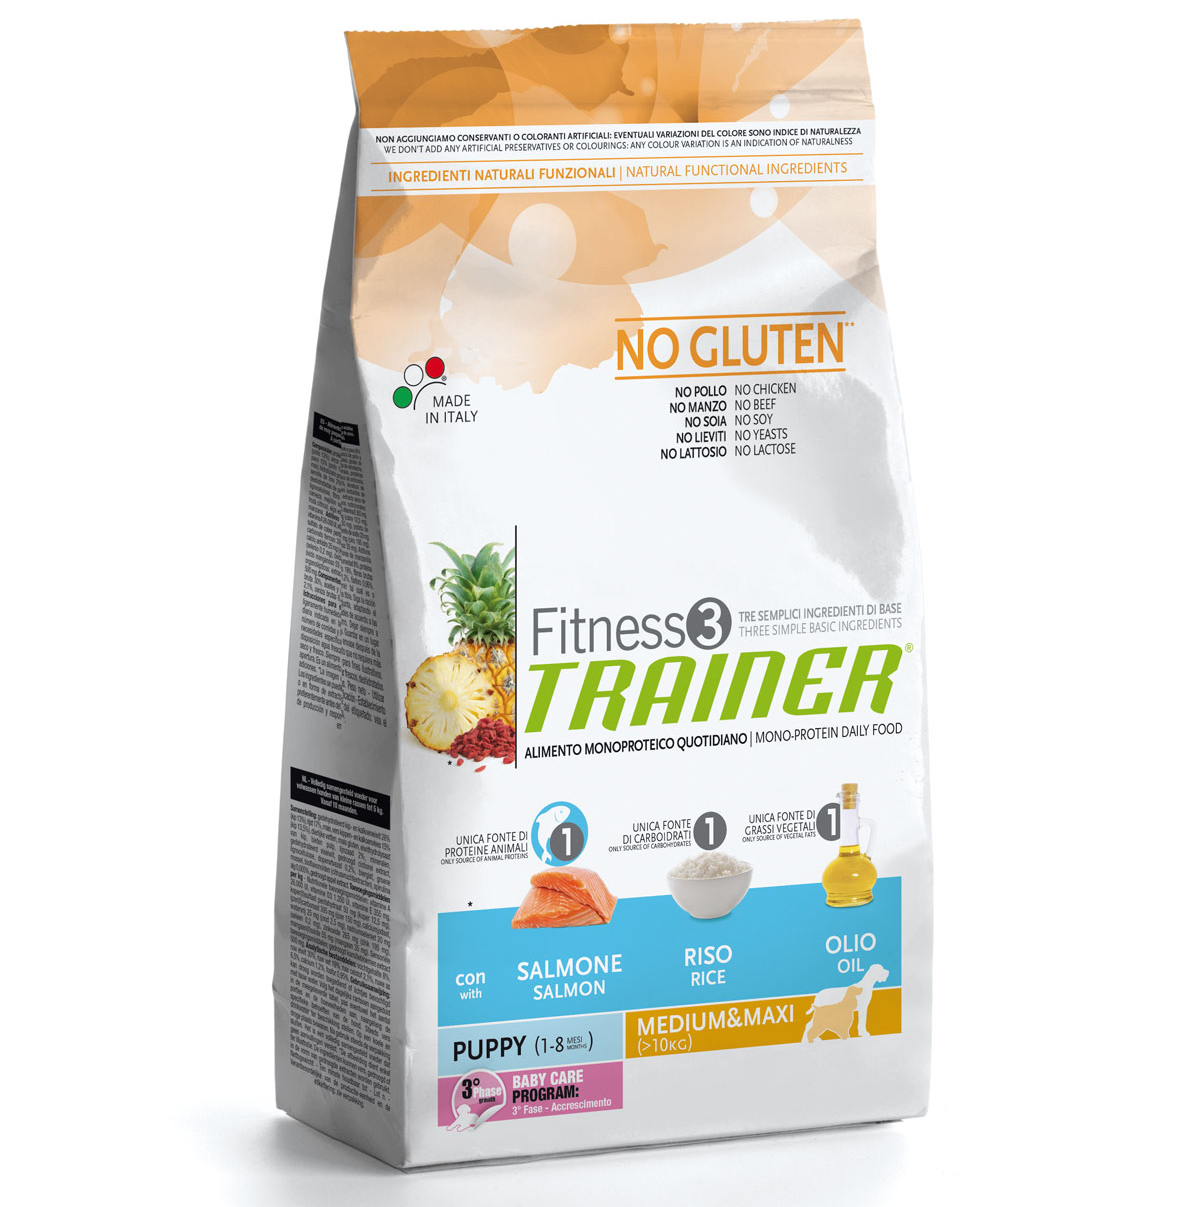 Trainer Fitness3 No Gluten Medium/Maxi Puppy Salmon and Rice 035550